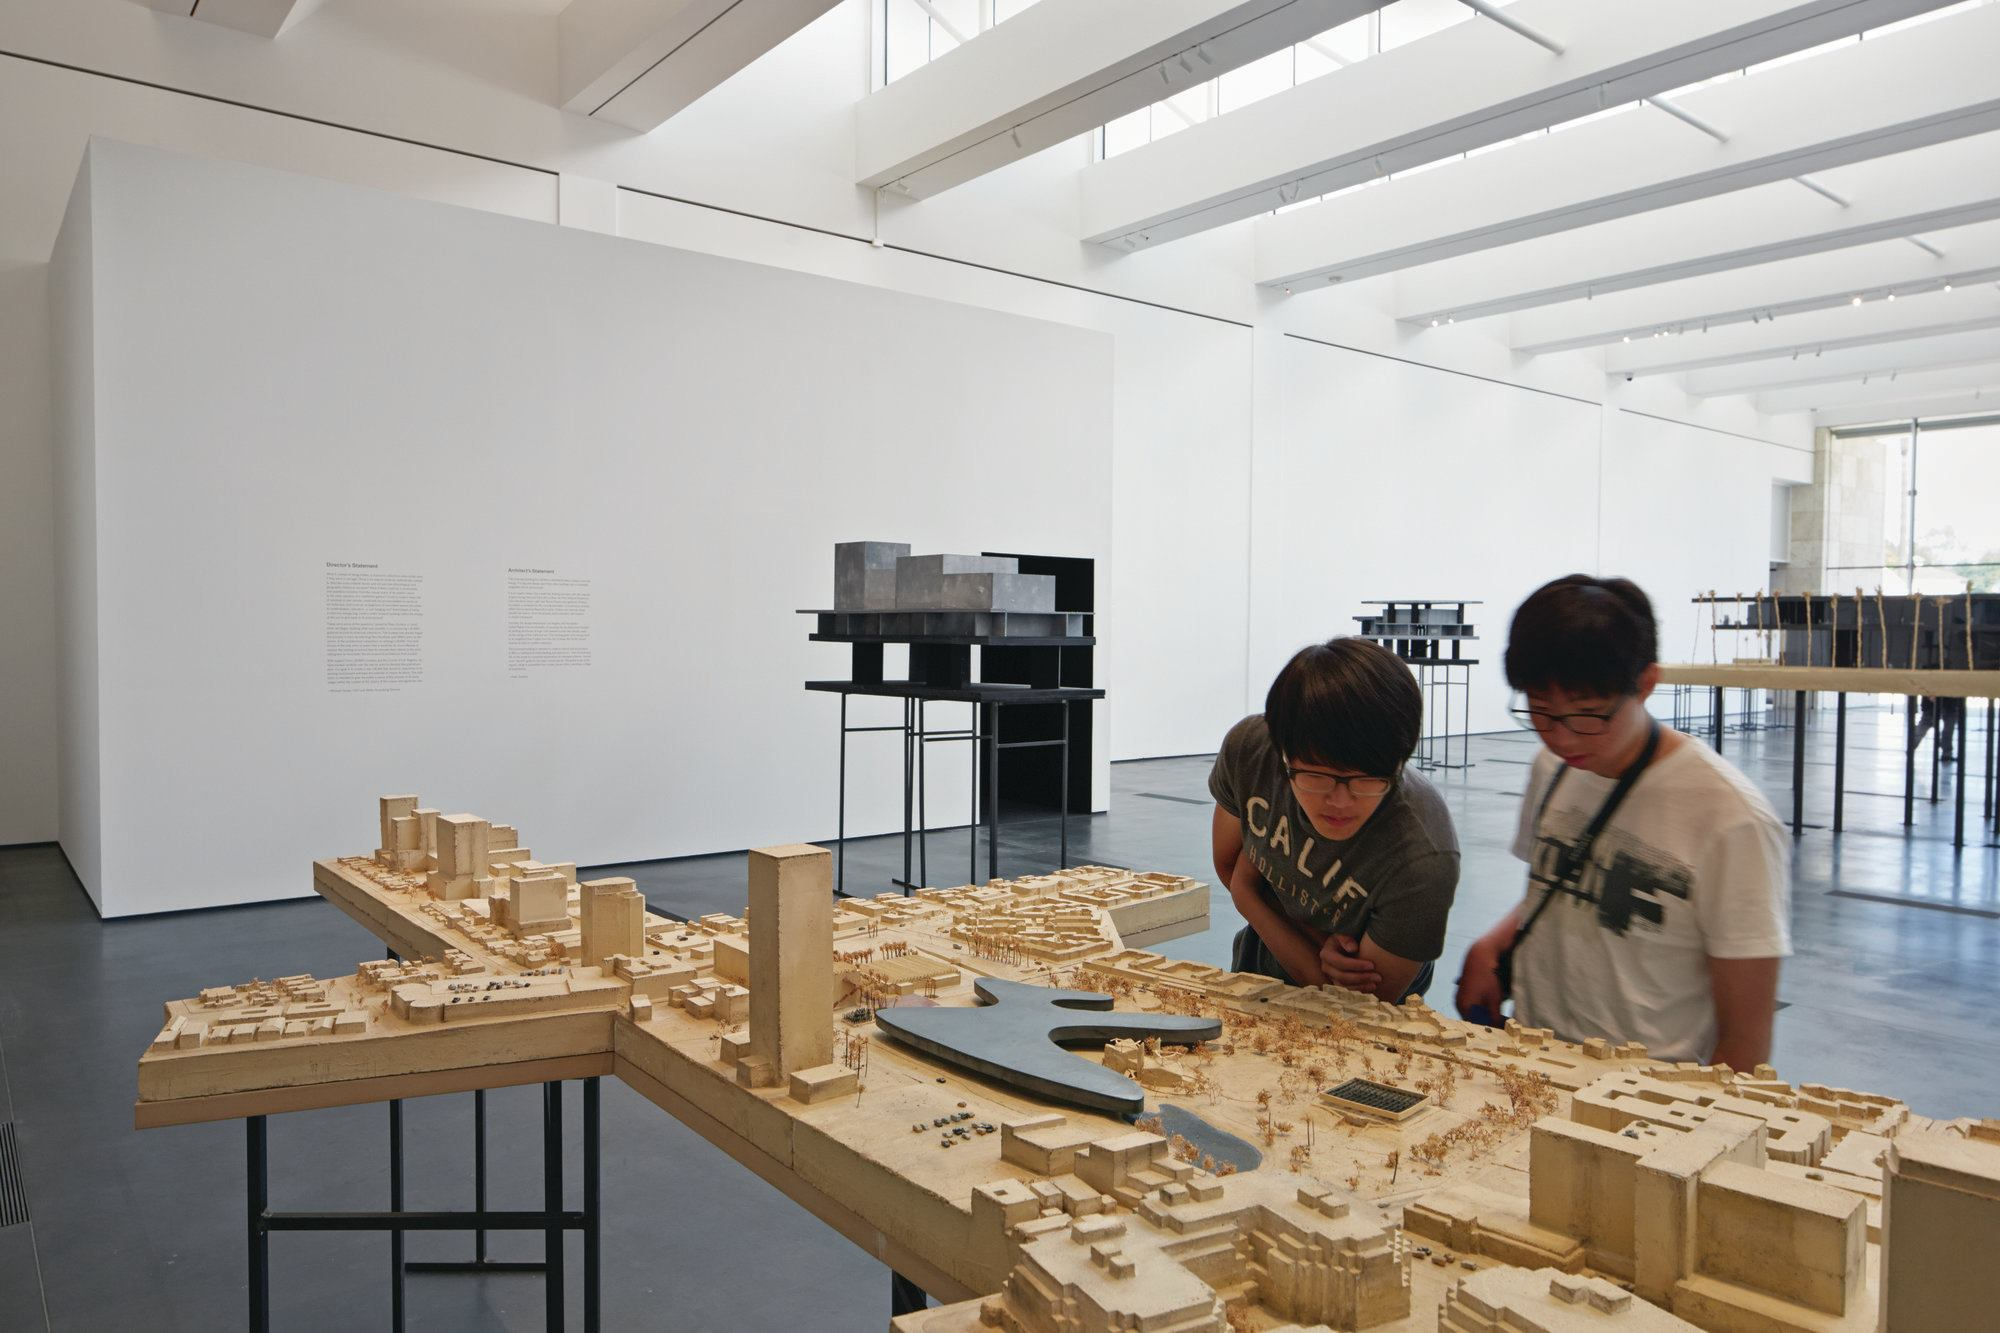 Discussing The New Lacma Design With Peter Zumthor